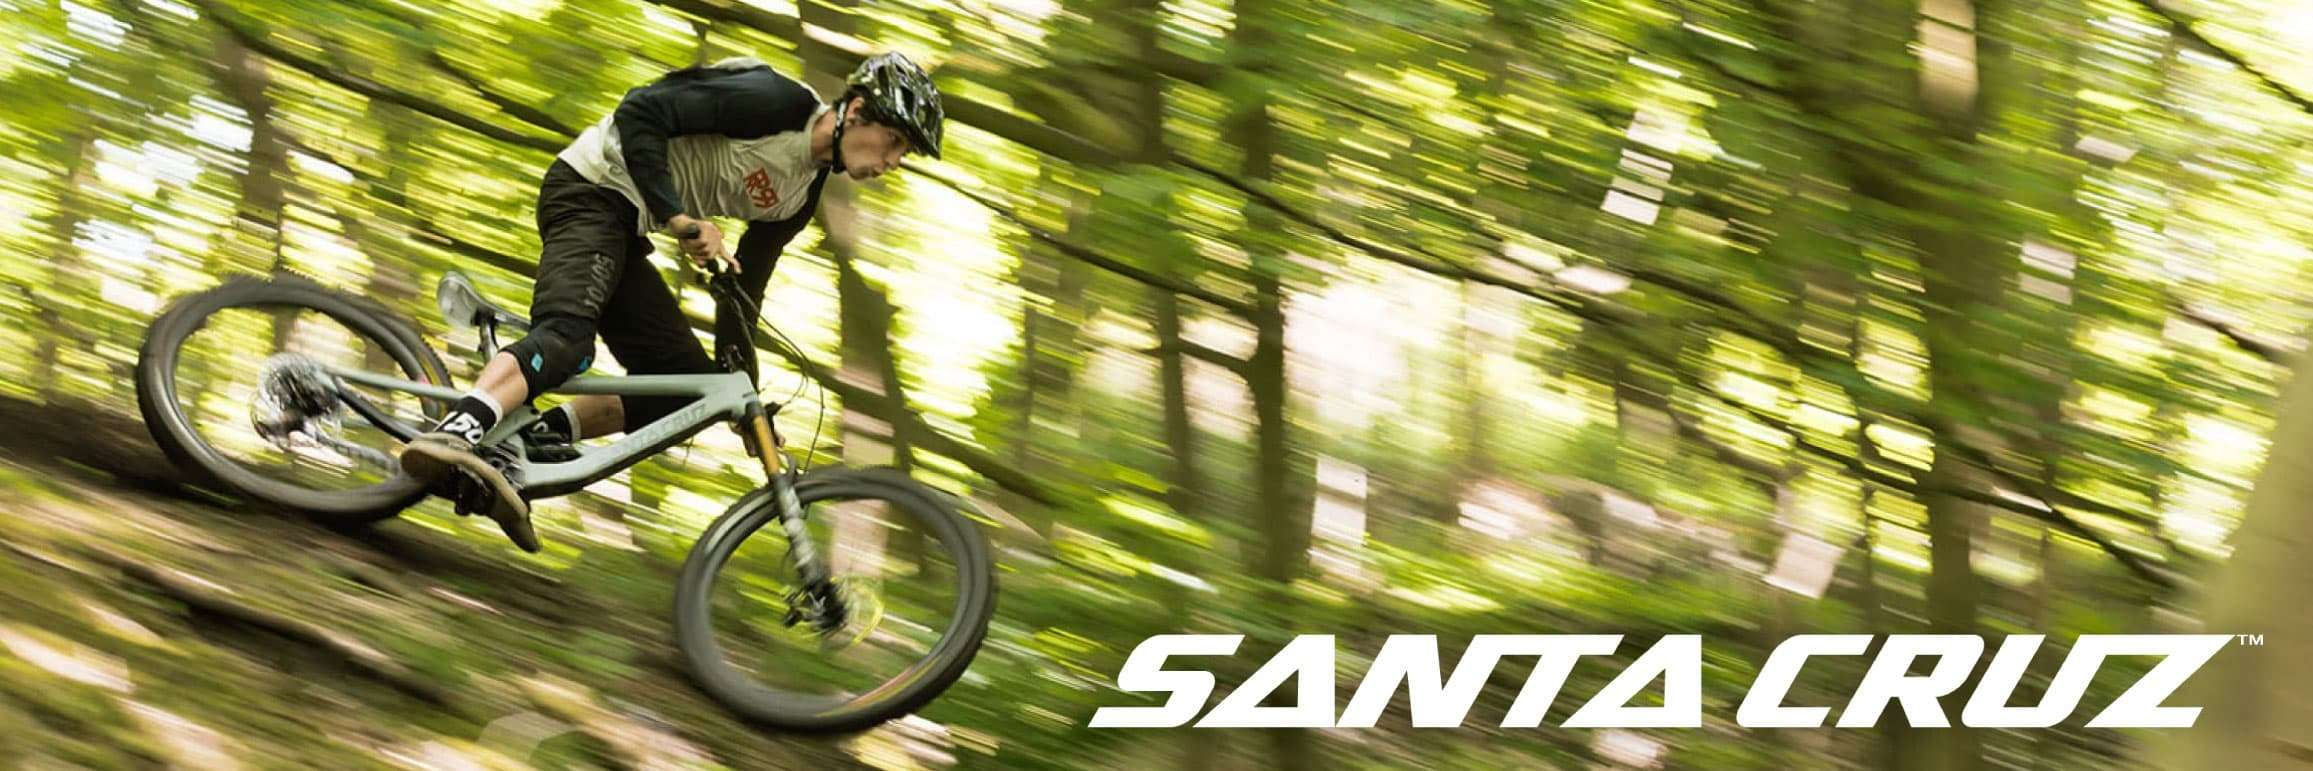 Learn more about Santa Cruz bikes!